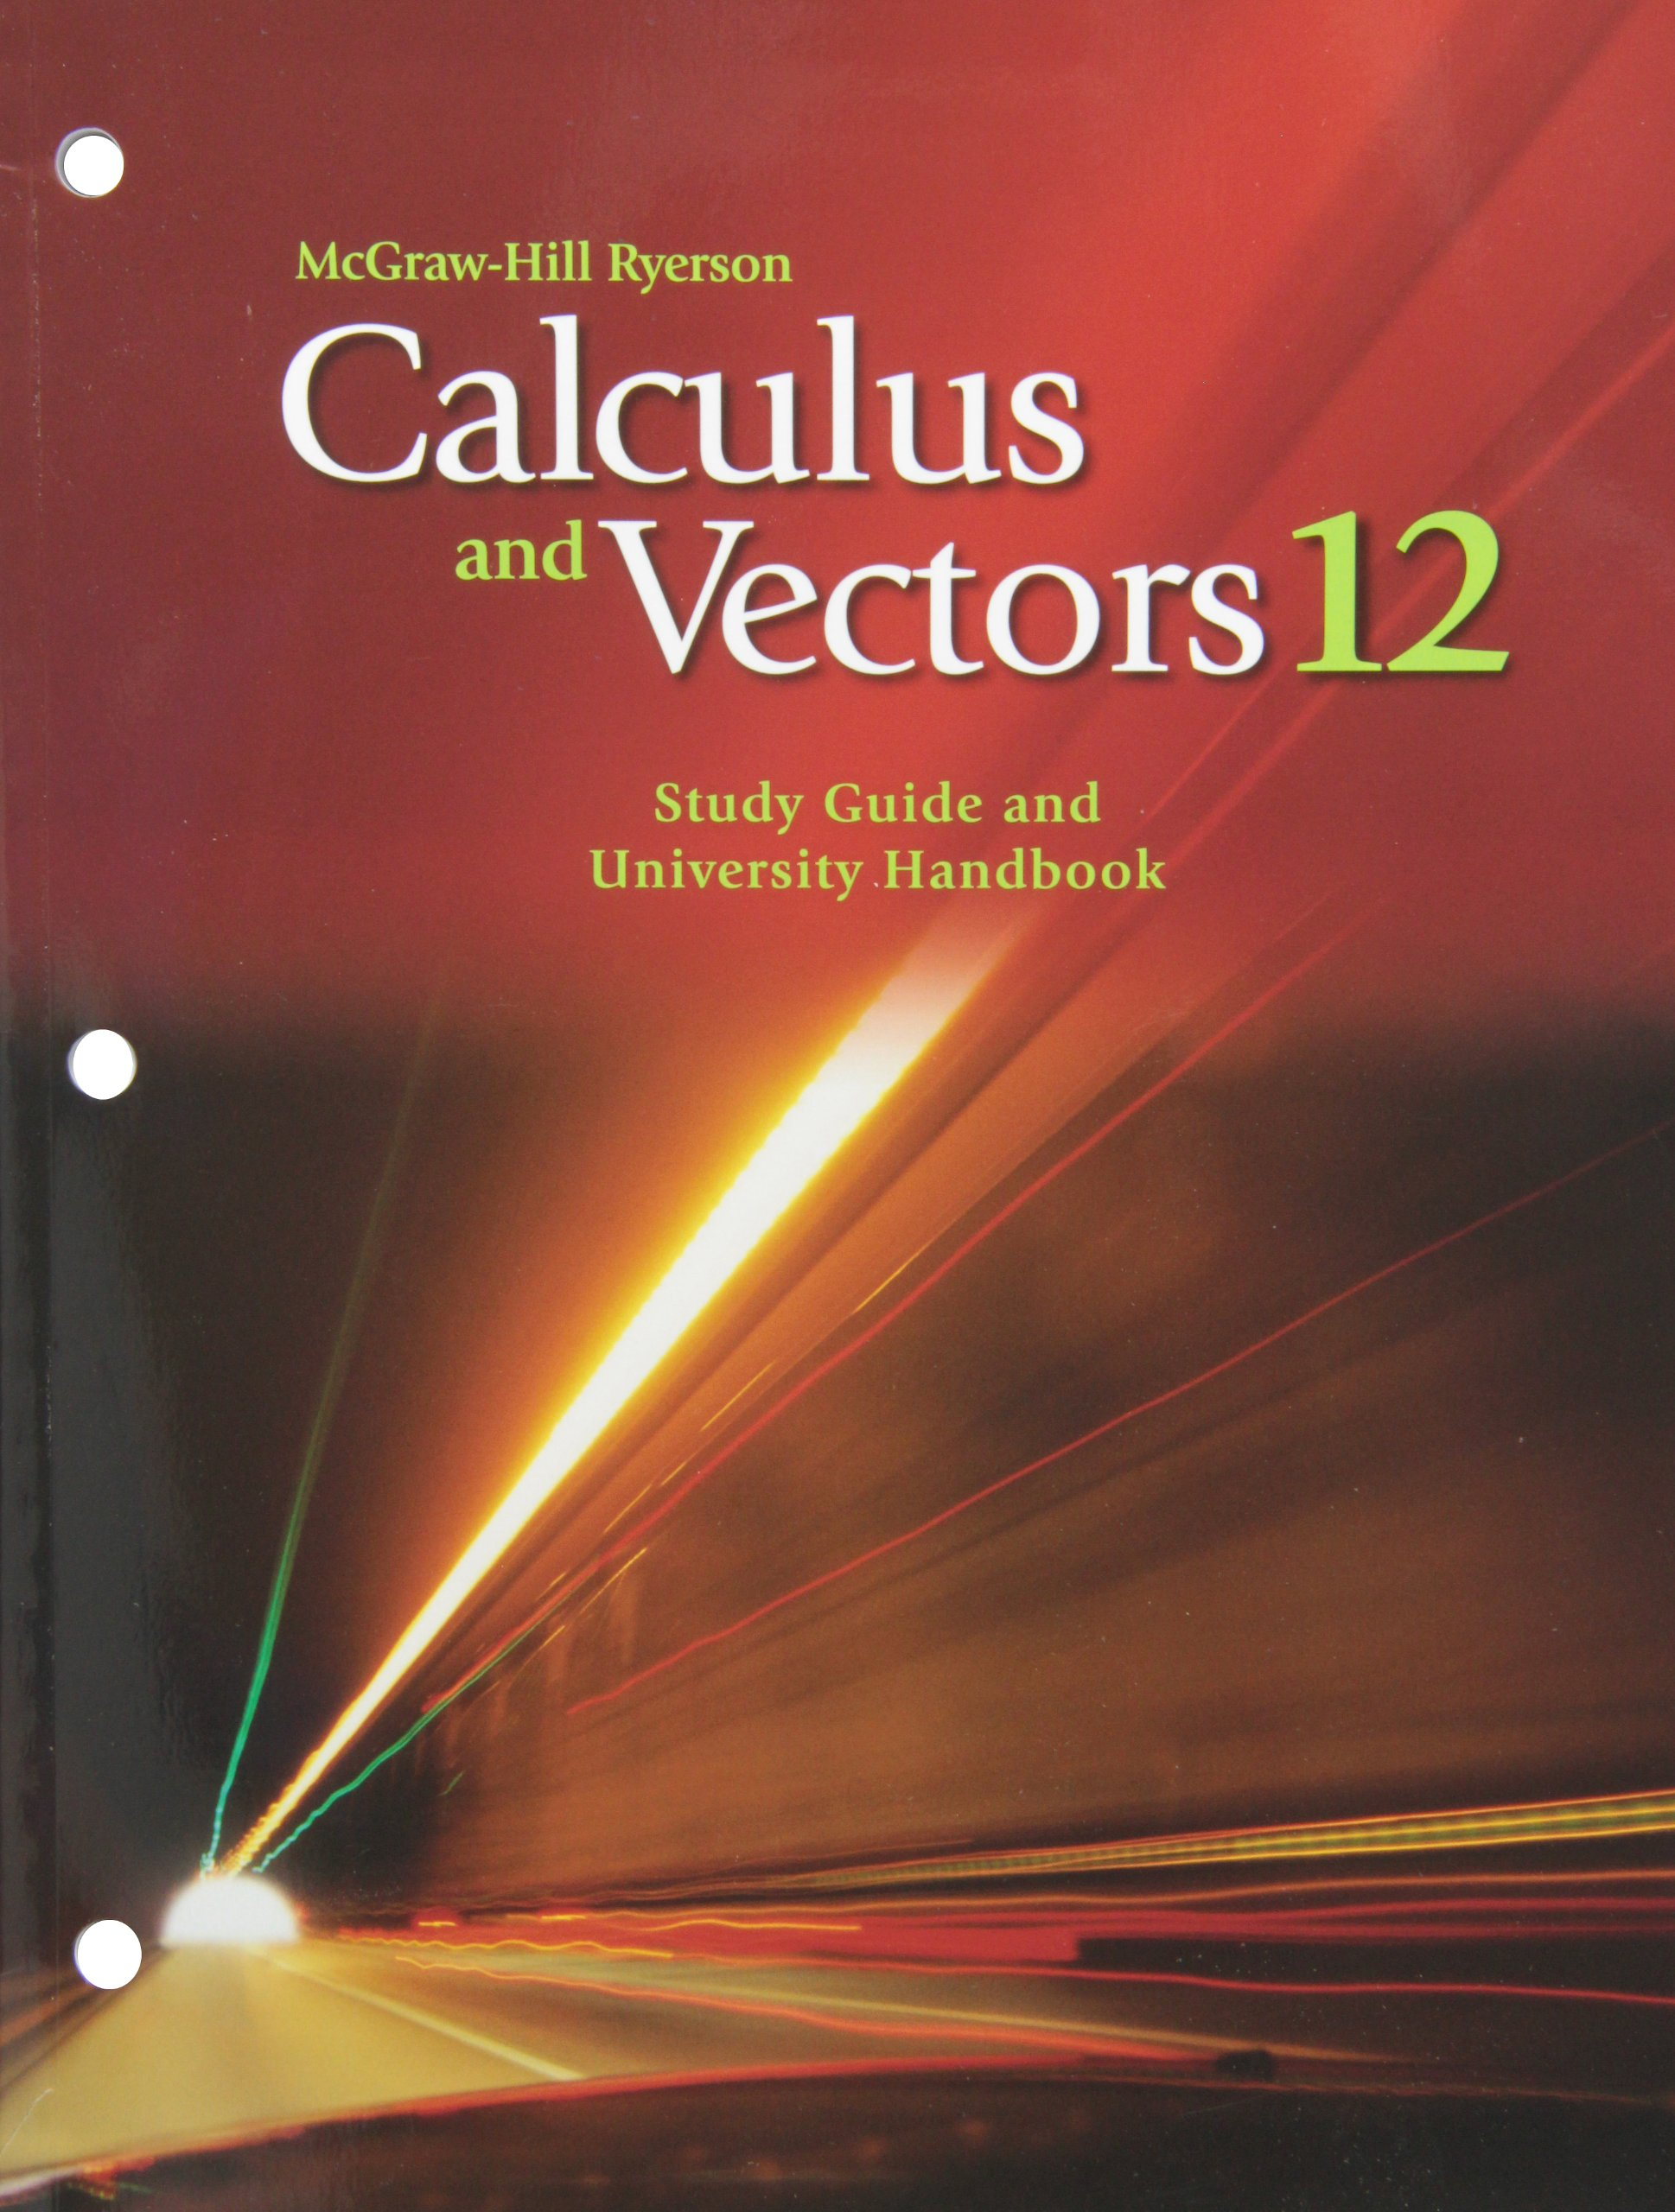 Calculus and Vectors 12 Study Guide and University Handbook: unknown:  9780070735897: Amazon.com: Books